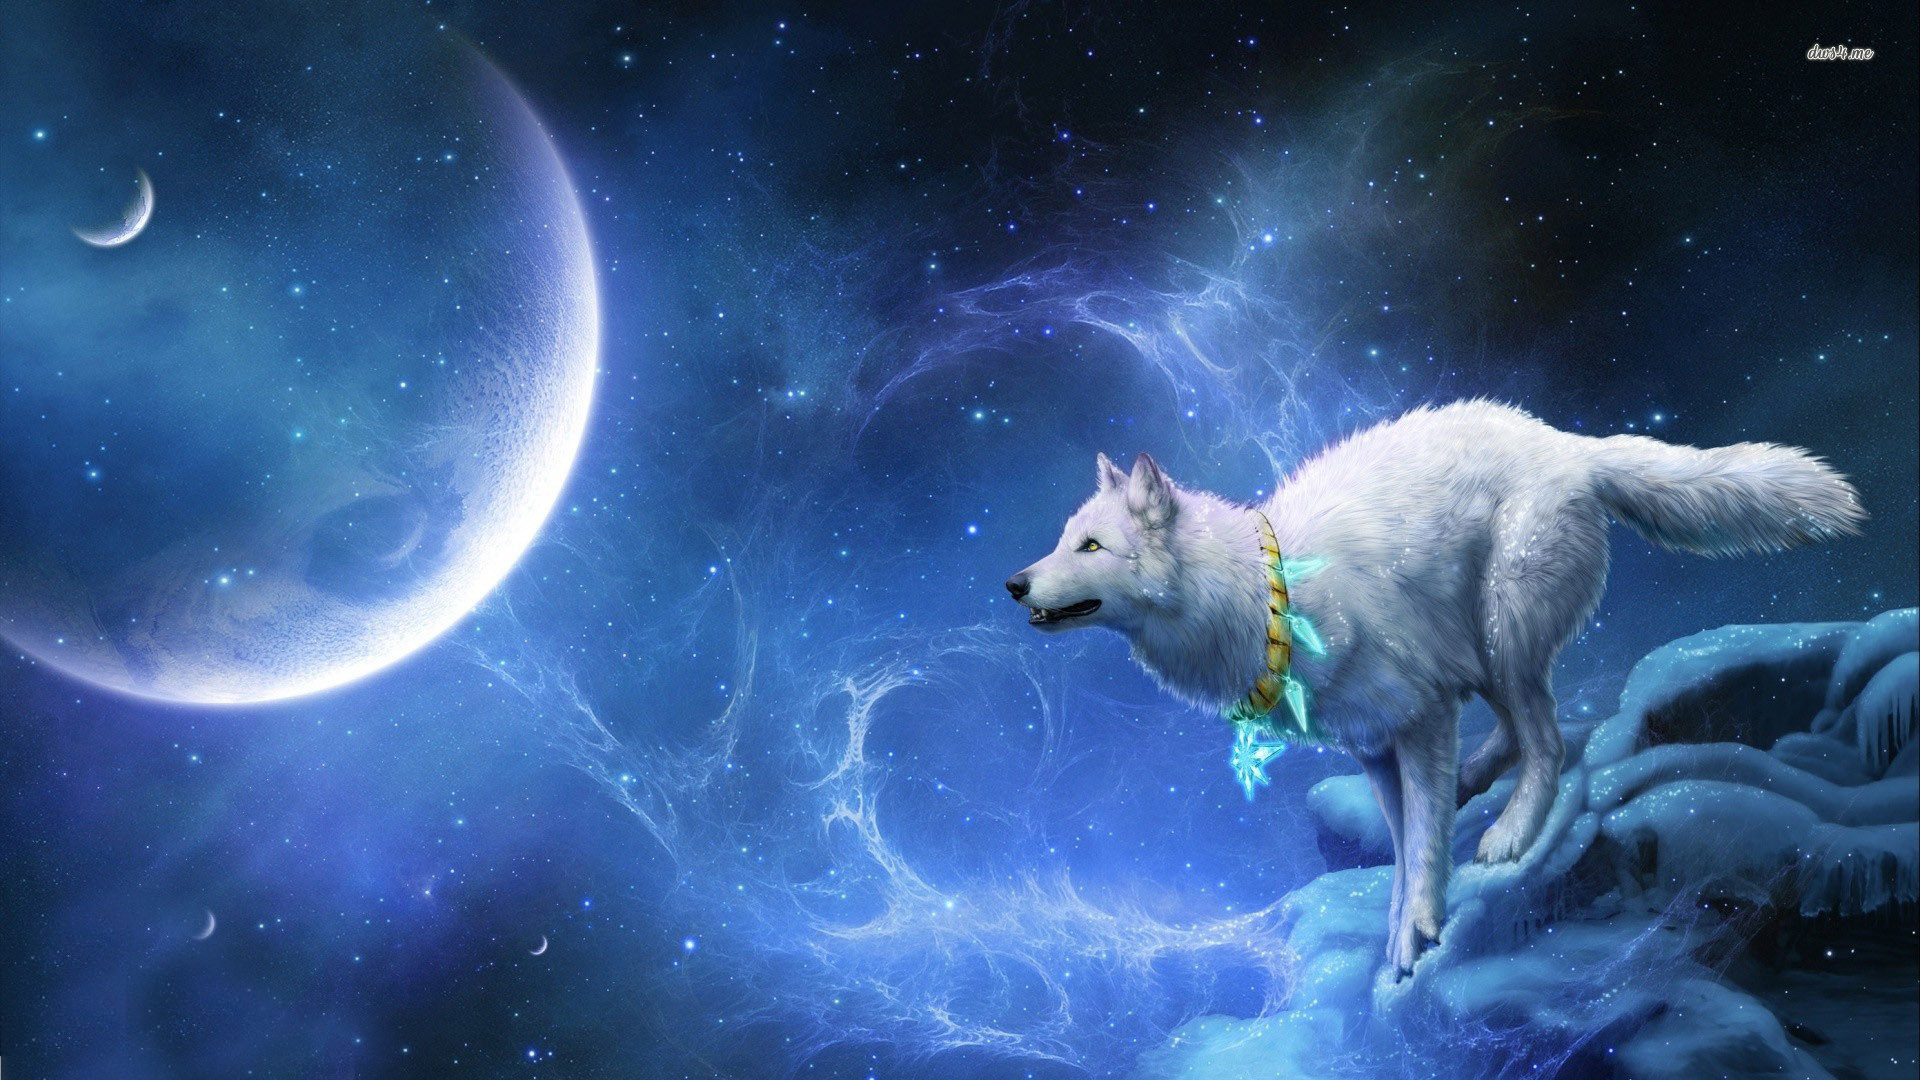 1920x1080 Image - 13825-wolf-in-space--digital-art-wallpaper.jpg | Animal  Jam Clans Wiki | FANDOM powered by Wikia